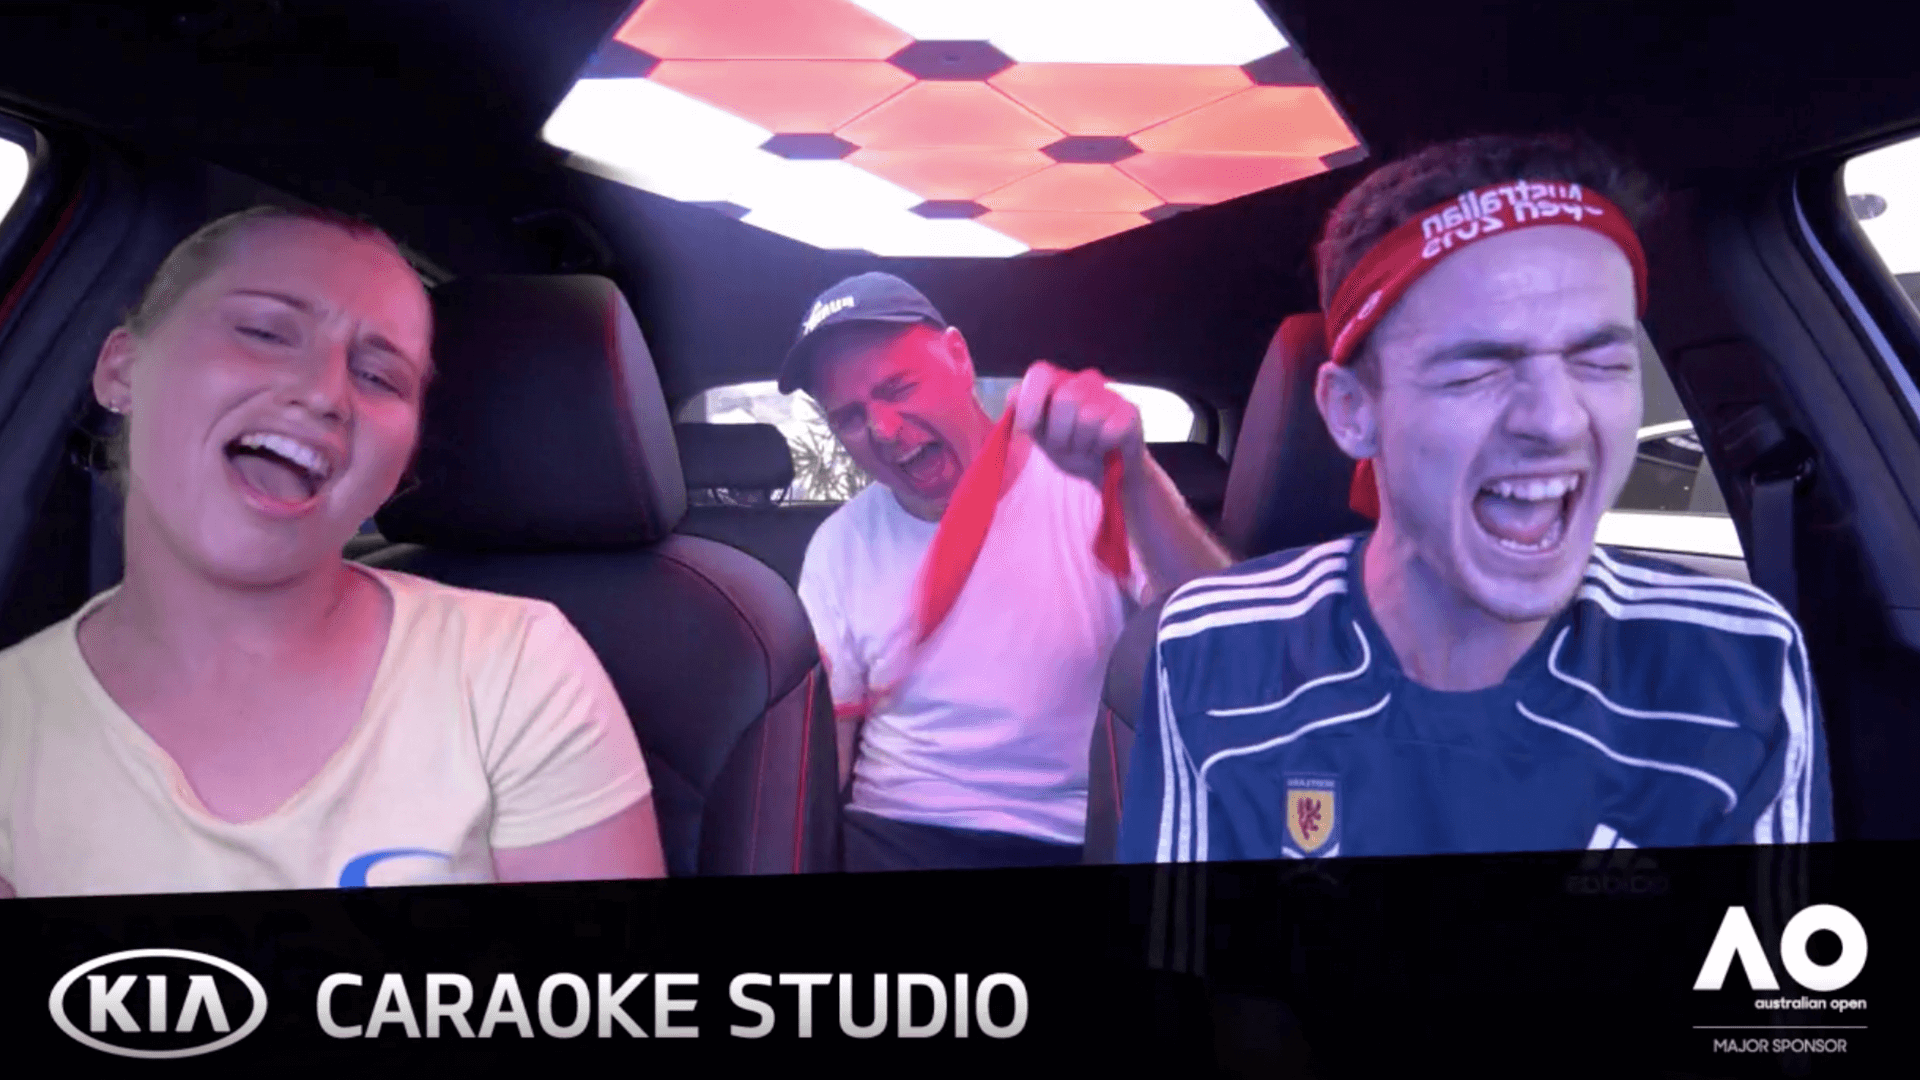 Screenshot of in-car experience at Kia Caraoke Studio